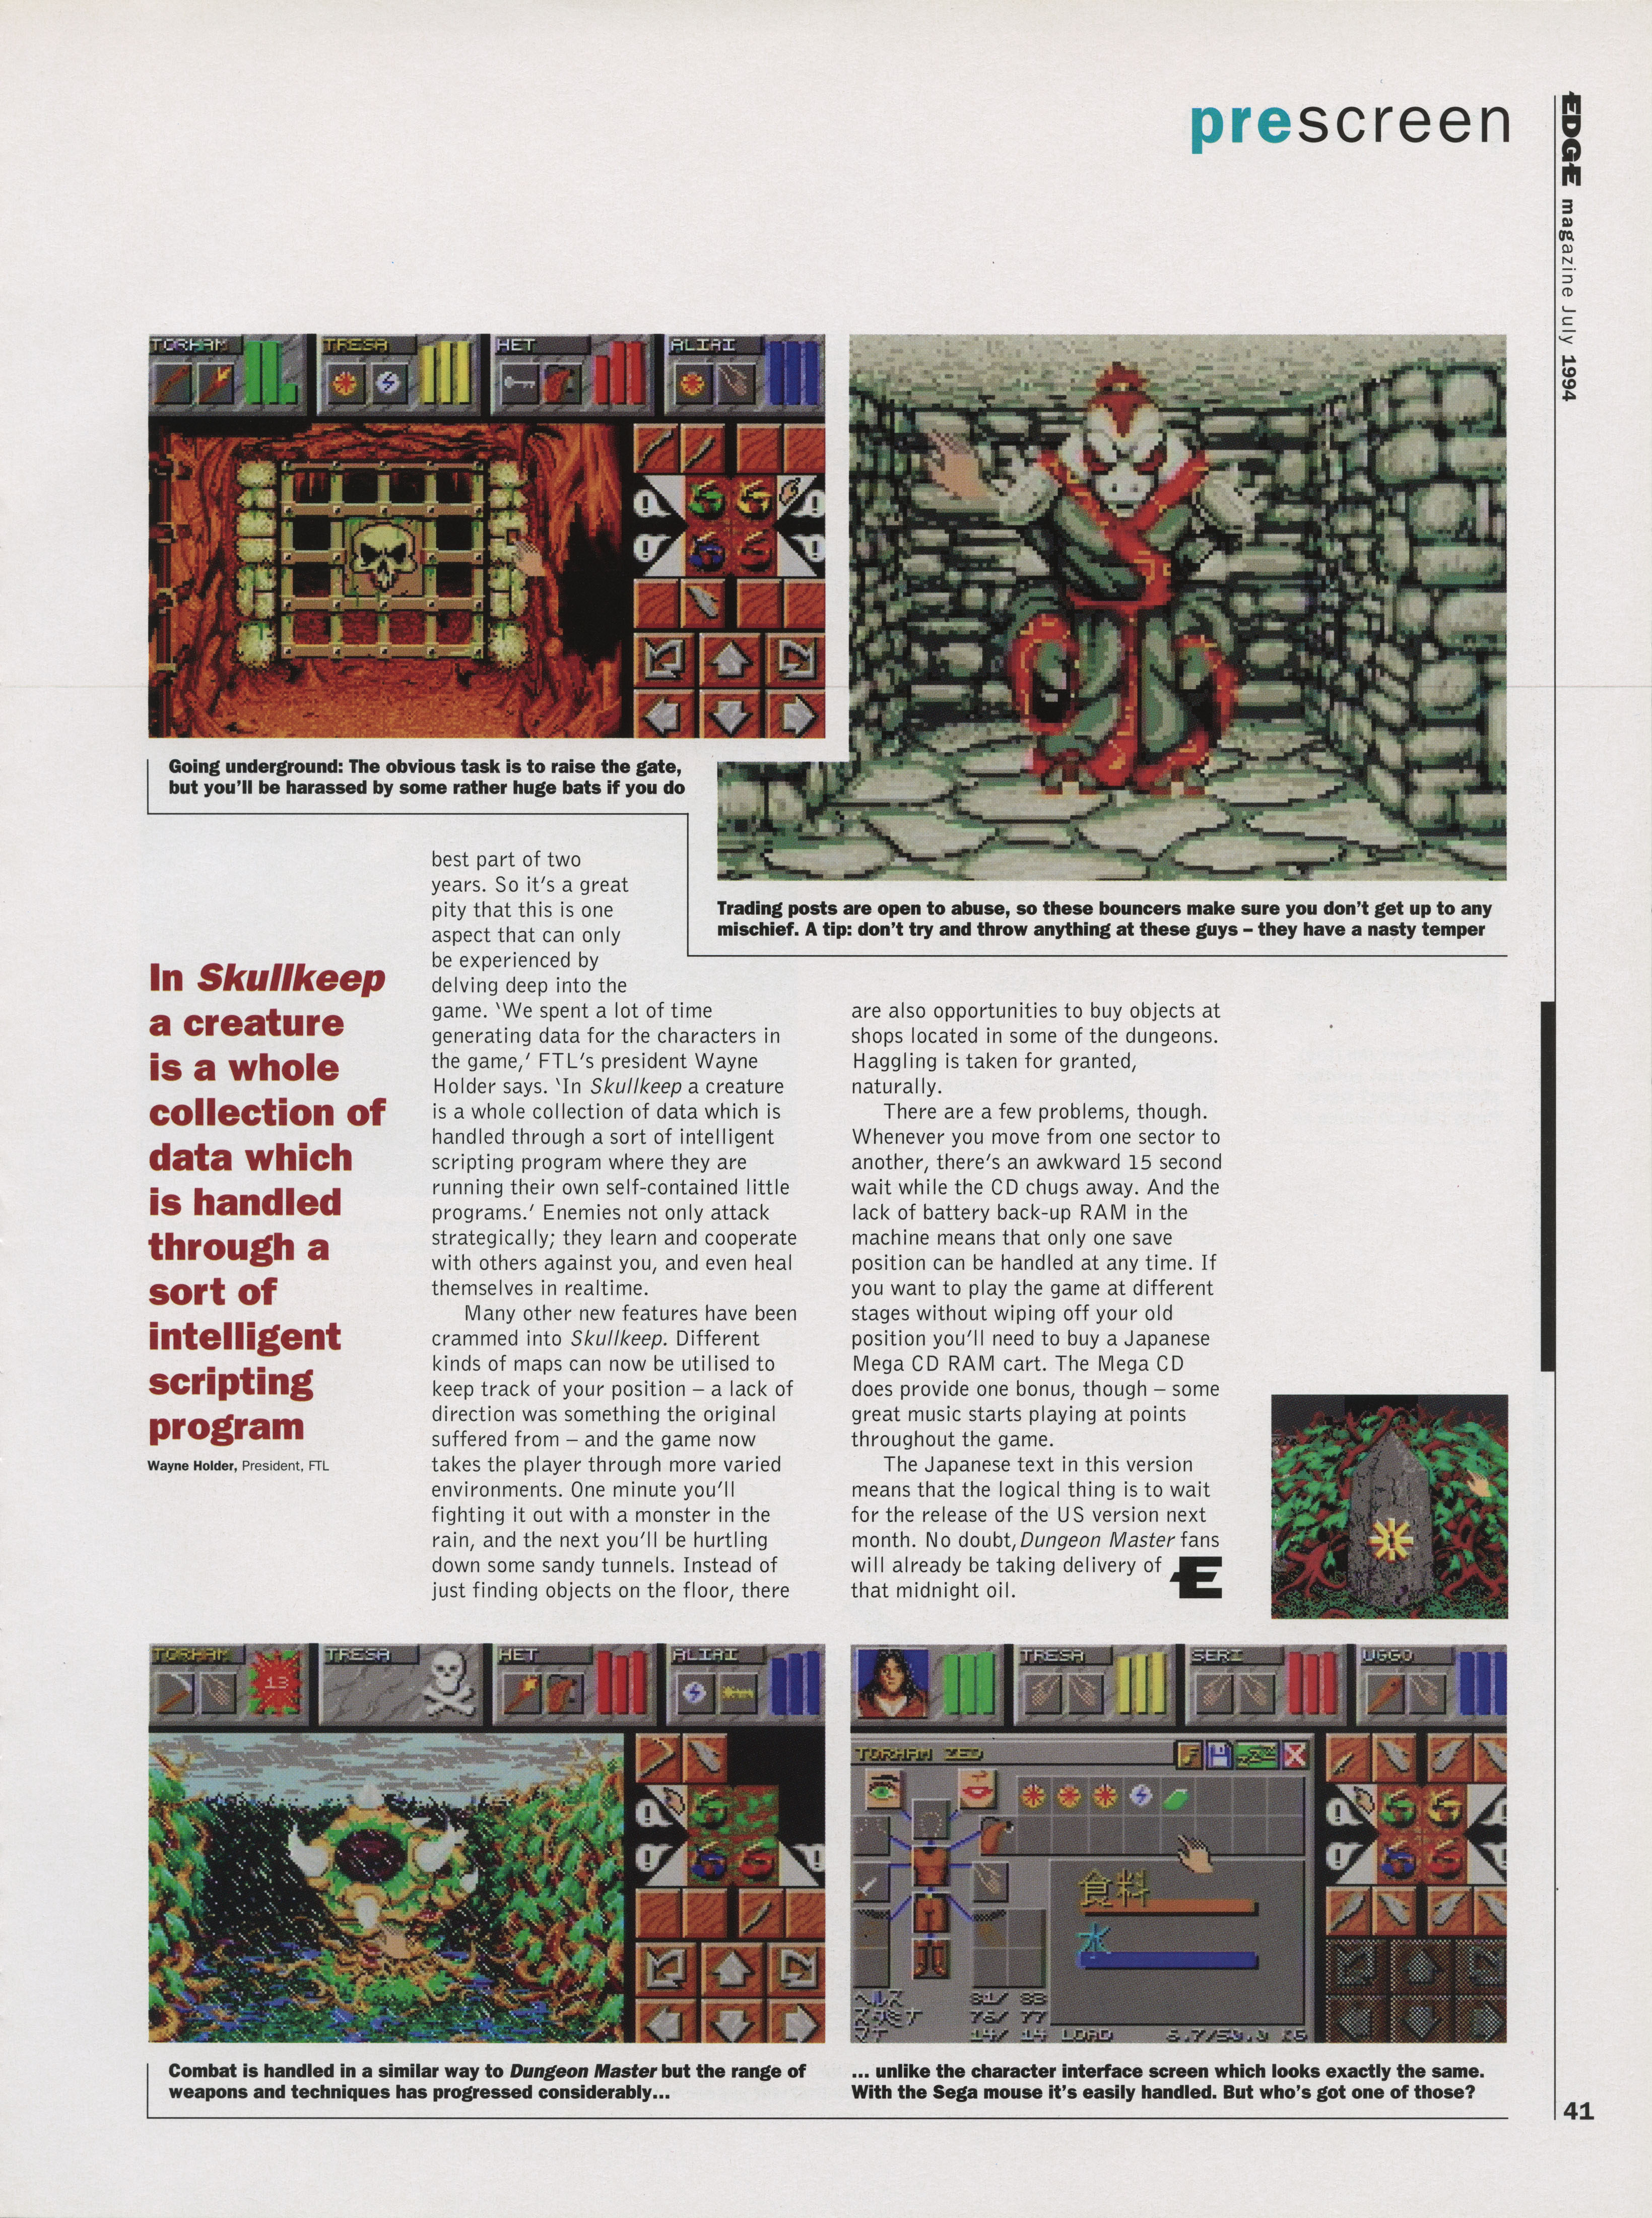 Dungeon Master II for Mega CD Preview published in British magazine 'Edge', Issue #10 July 1994, Page 41